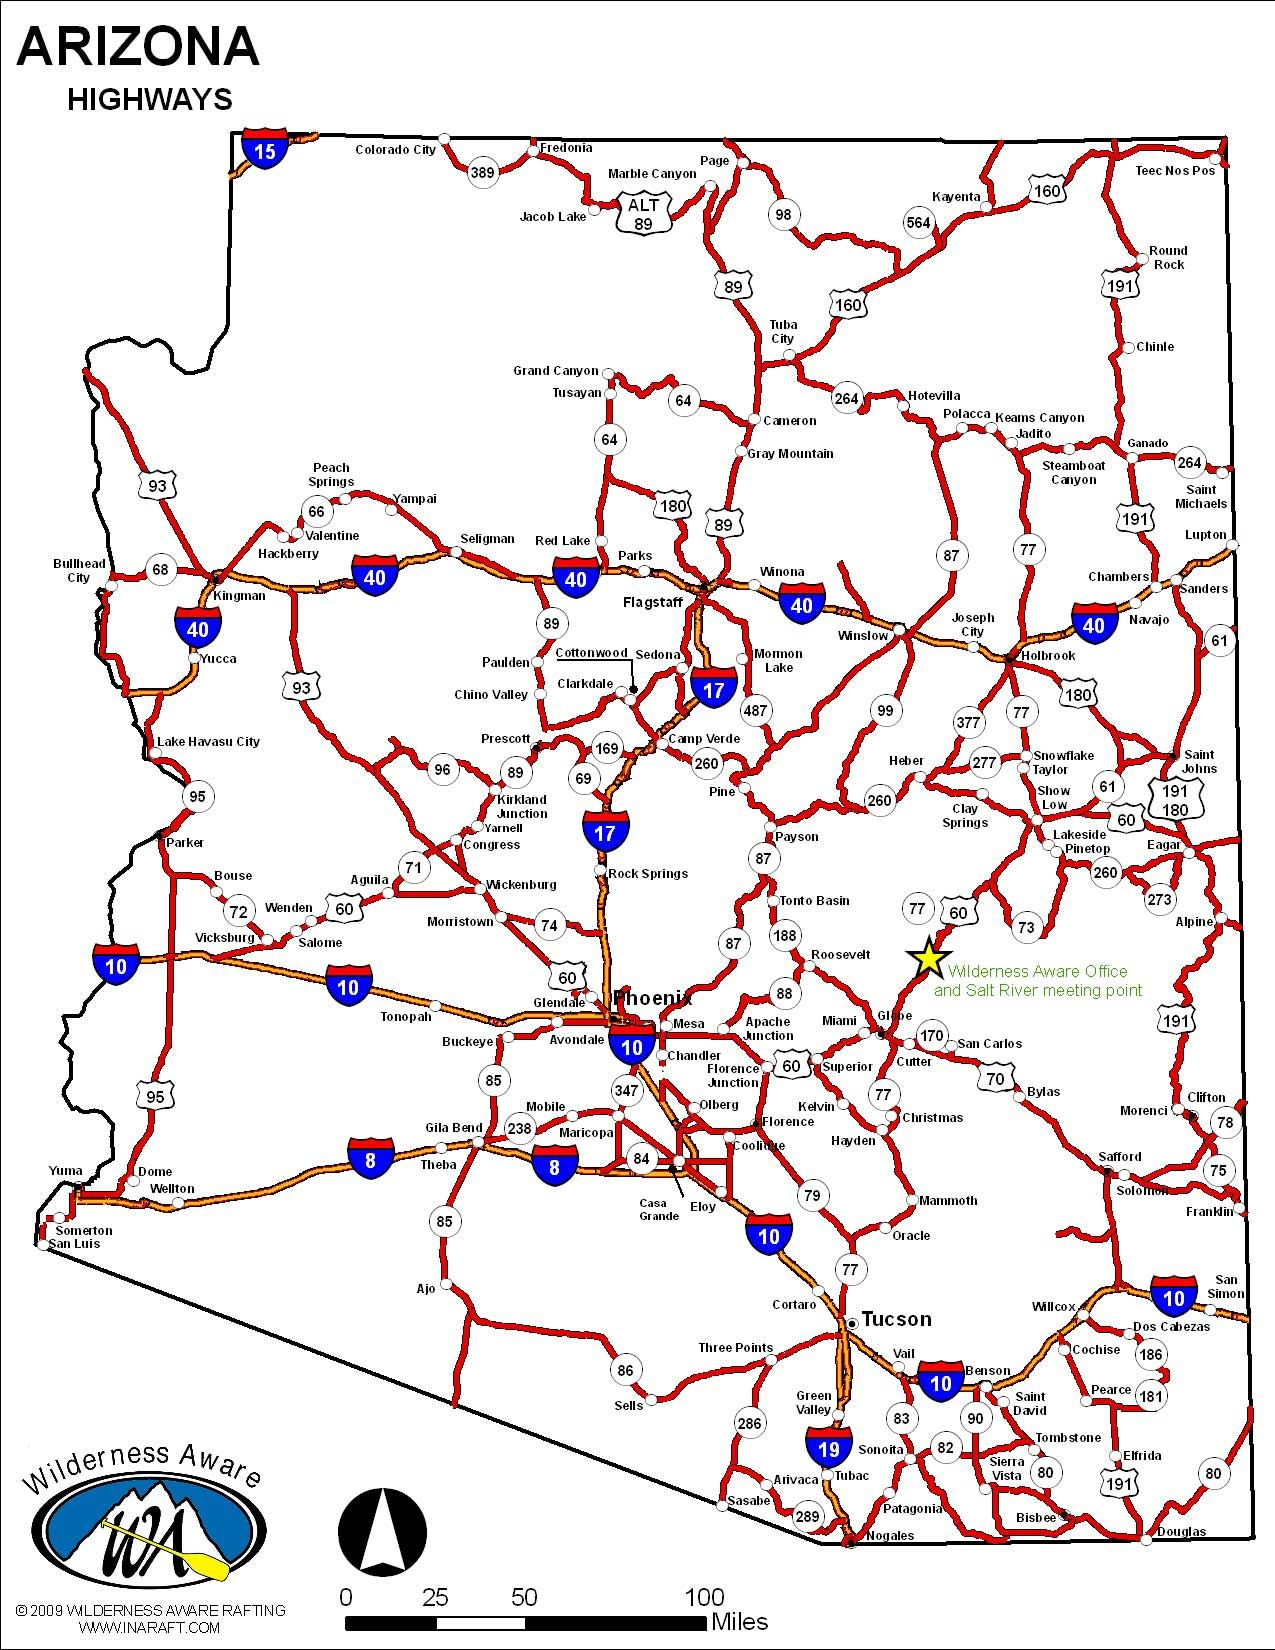 image of arizona state highway map Salt River Canyon Road Map